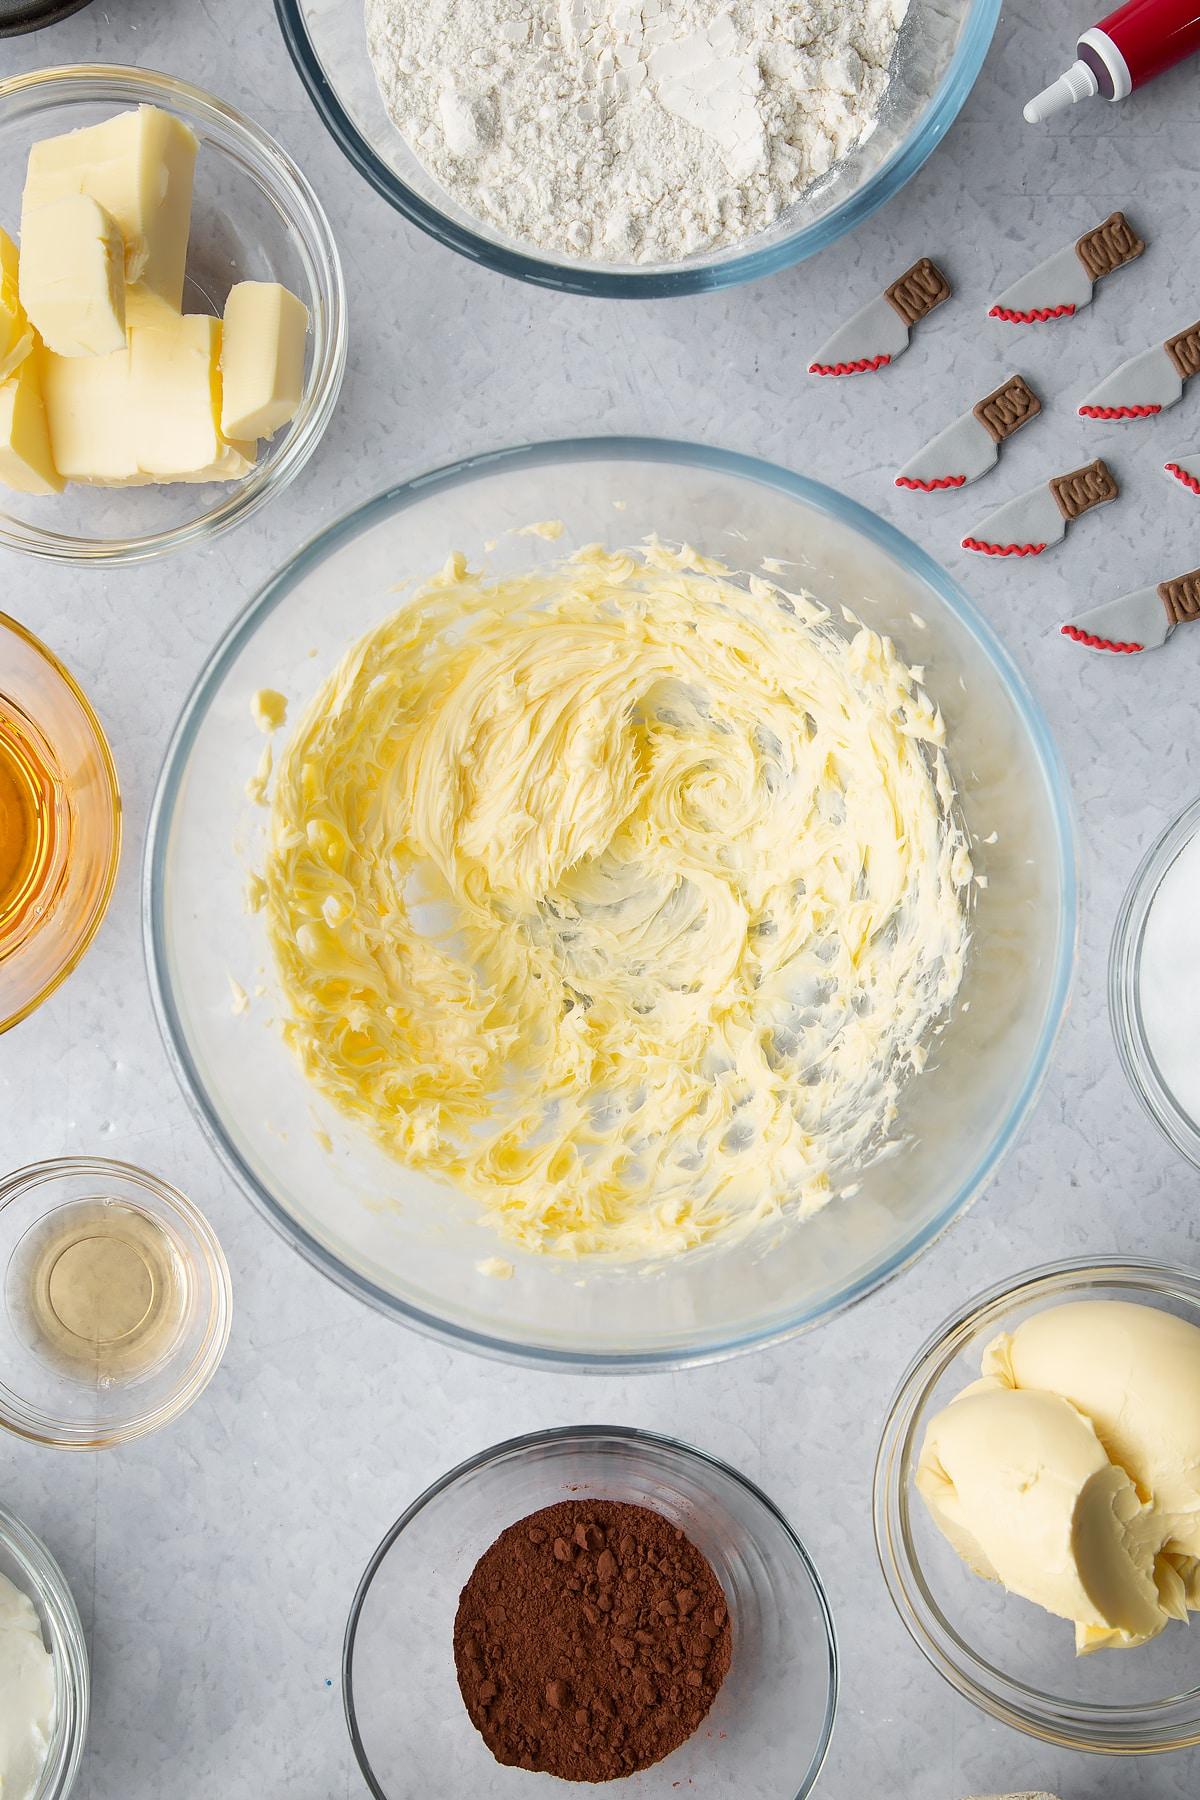 Whipped butter in a glass bowl. Ingredients to make red velvet Halloween cupcakes surround the bowl.